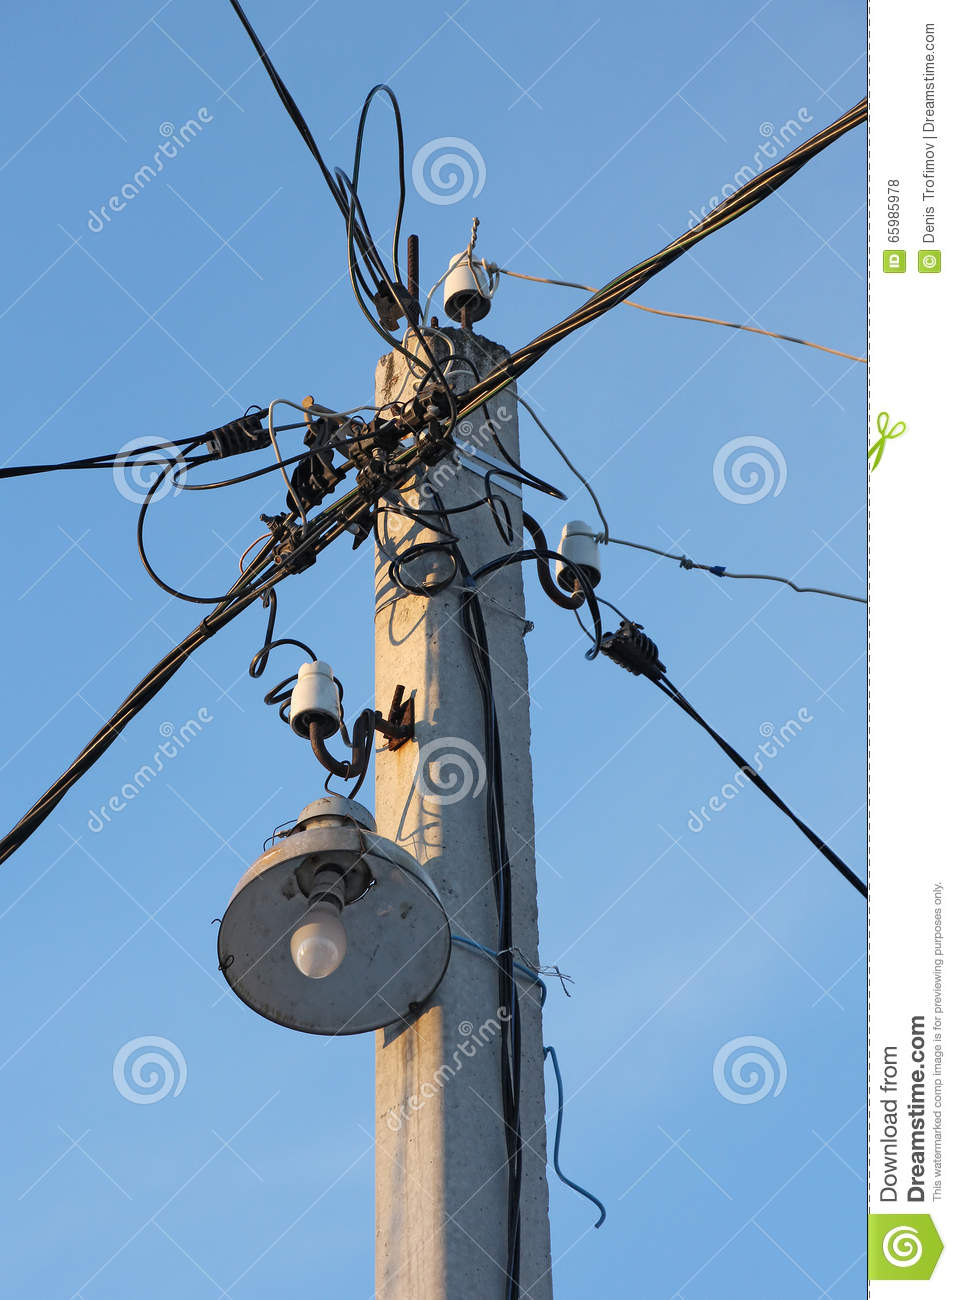 Tremendous Lamppost With A Bulb And Wires In Different Directions Stock Photo Wiring 101 Akebwellnesstrialsorg